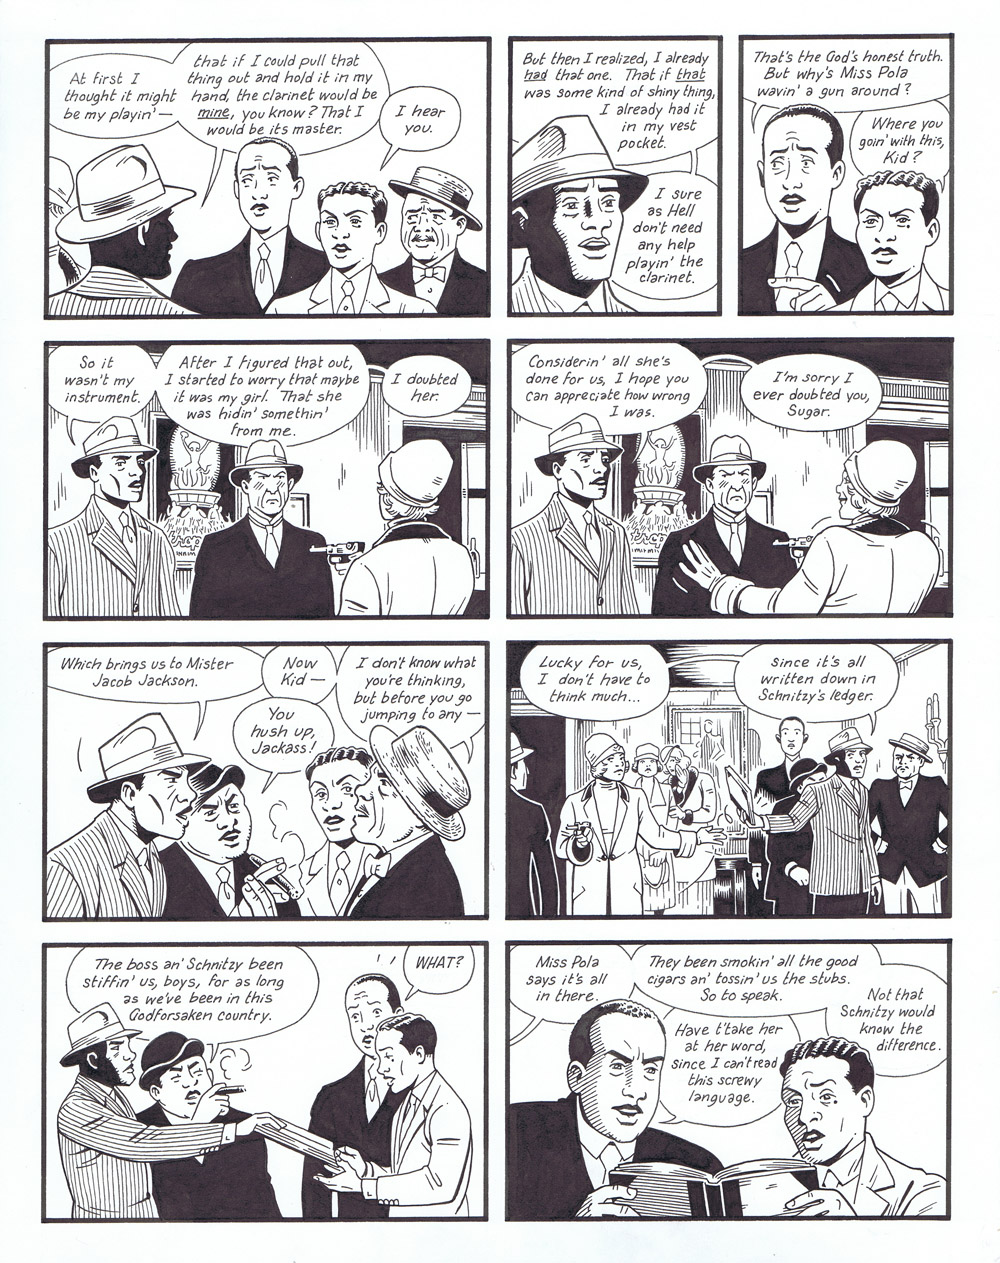 Berlin Book Two: City of Smoke - page 201